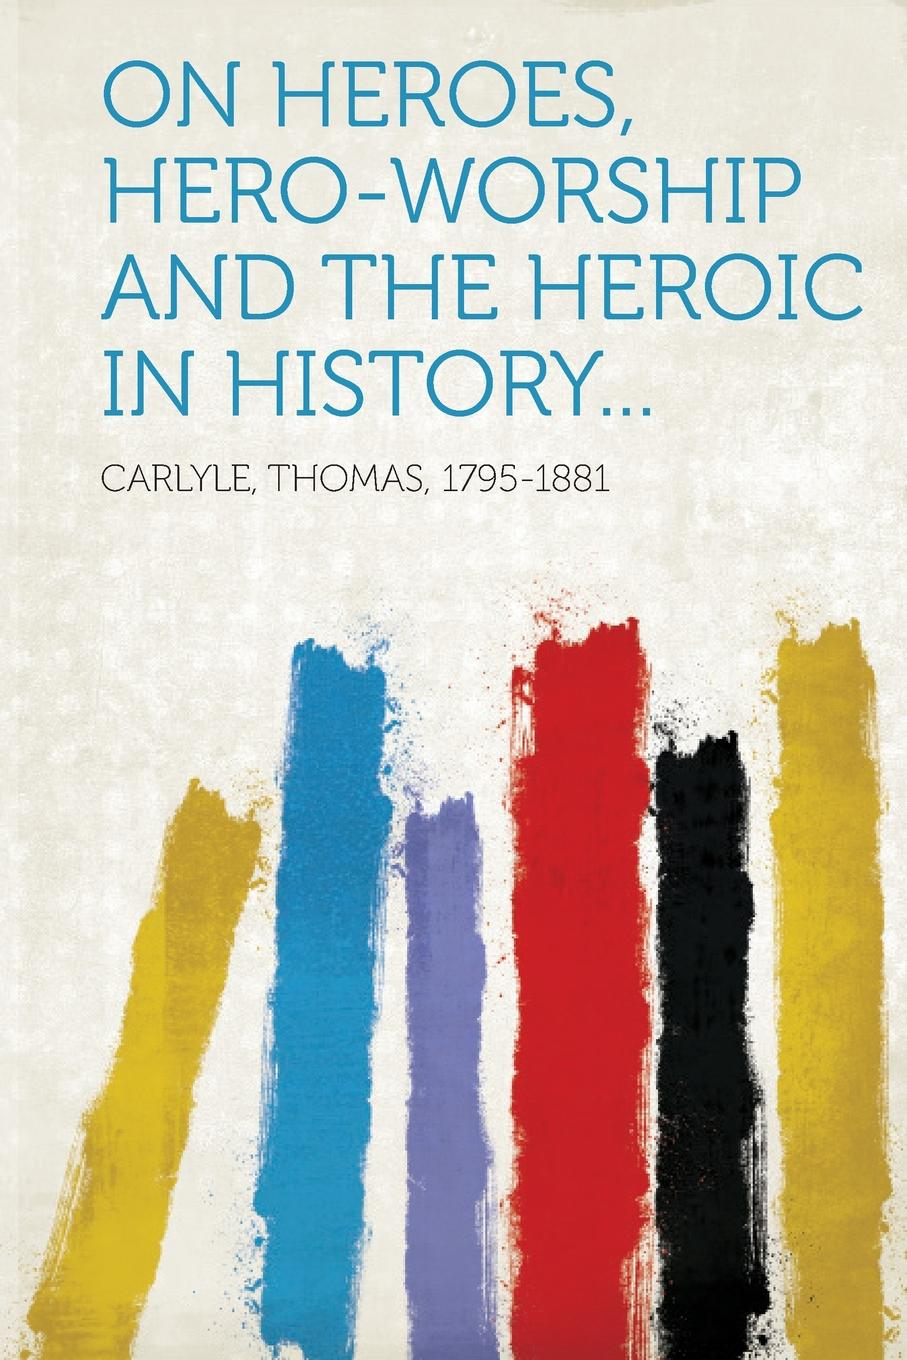 Carlyle Thomas 1795-1881 On heroes, hero-worship and the heroic in history... томас карлейль sartor resartus and on heroes hero worship and the heroic in history